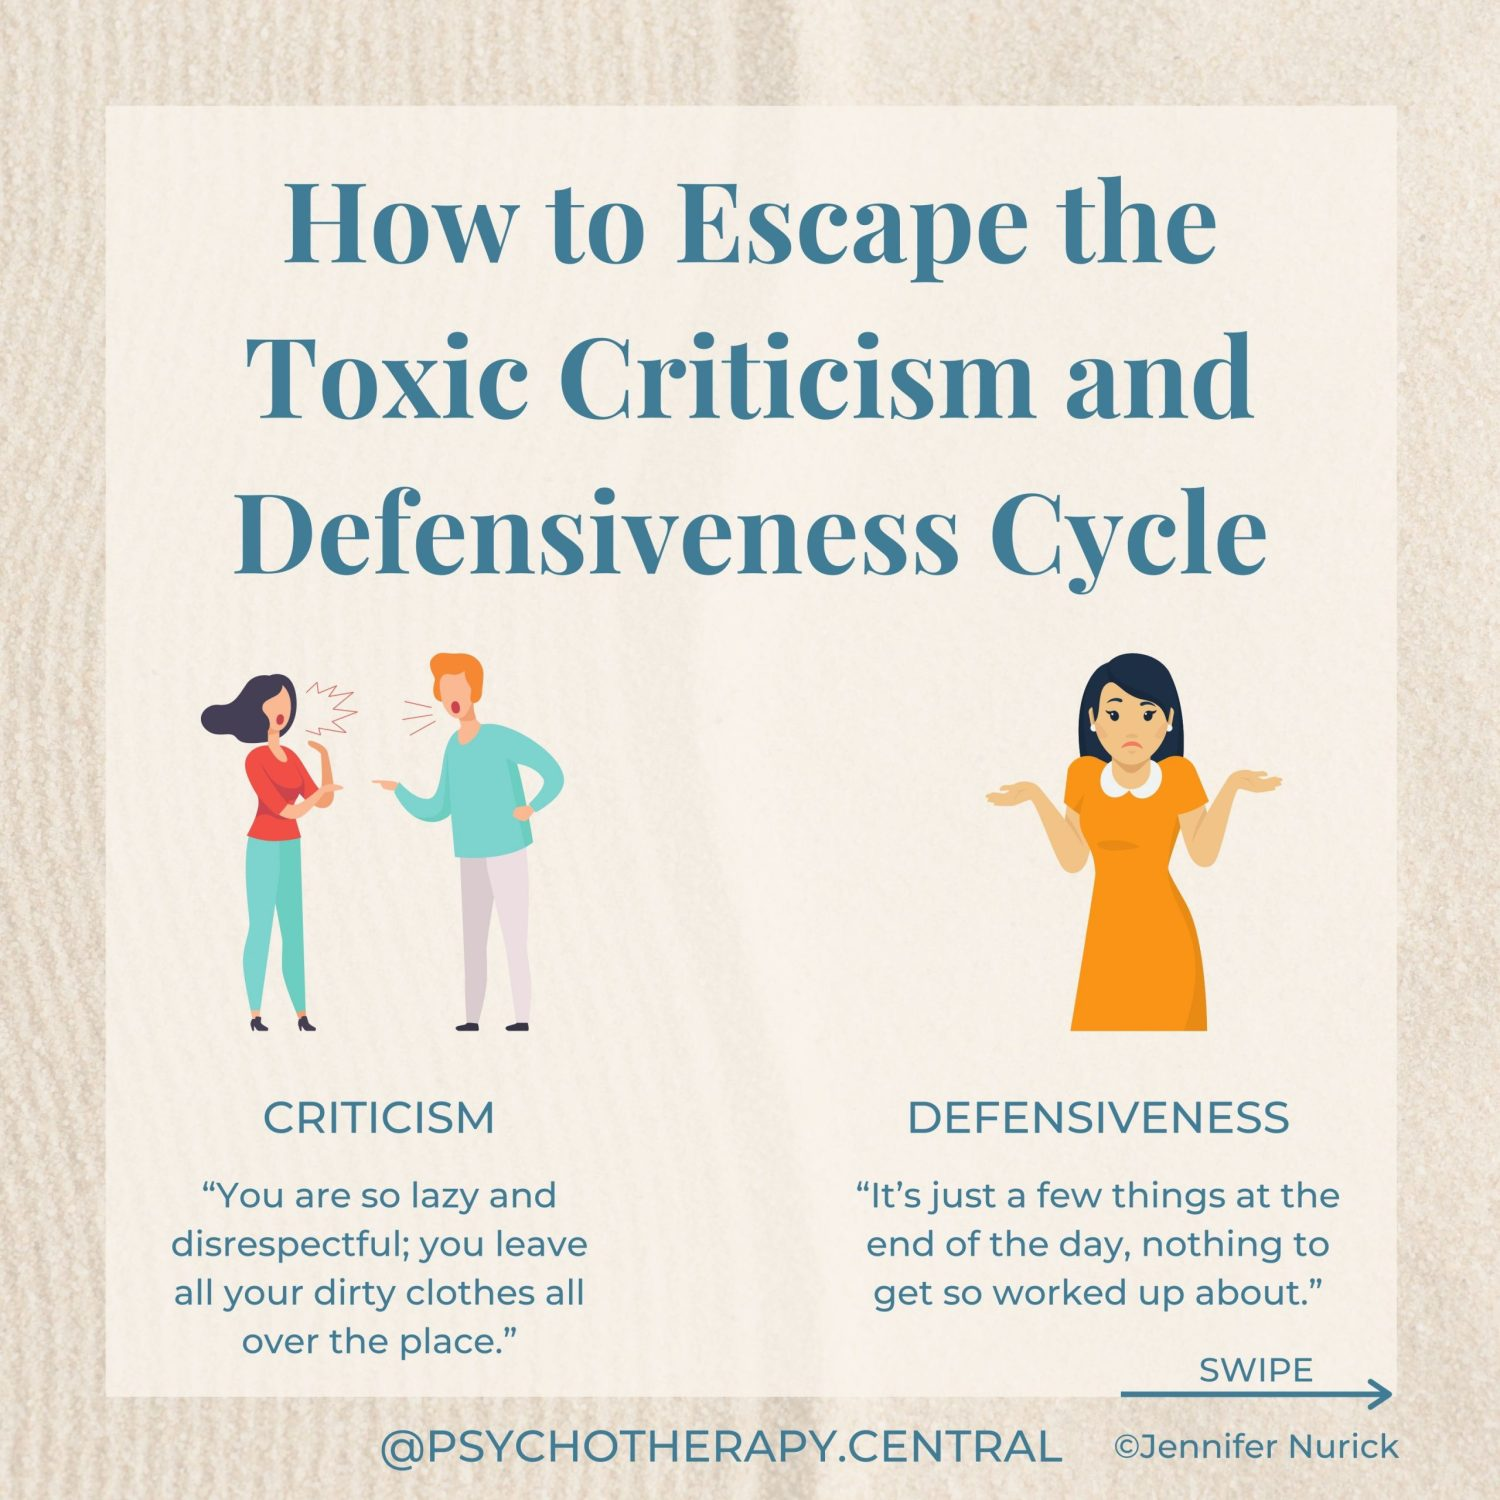 """How to Escape the Toxic Criticism and Defensiveness Cycle Criticism: """"You are so lazy and disrespectful; you leave all your dirty clothes all over the place."""" Antidote: """"I"""" statements: """"I feel _________ about __________. I need ___________."""" """"I feel upset and sad when you leave your dirty clothes on the floor. I need you to put them in the basket."""" Defensiveness: """"It's just a few things at the end of the day, nothing to get so worked up about."""" Antidote: Taking some responsibility, even if it is just a little. """"I hear you are annoyed/sad; I can be a bit messy sometimes."""" Remember: Listen, validate, accept some responsibility, what can we / I change?"""